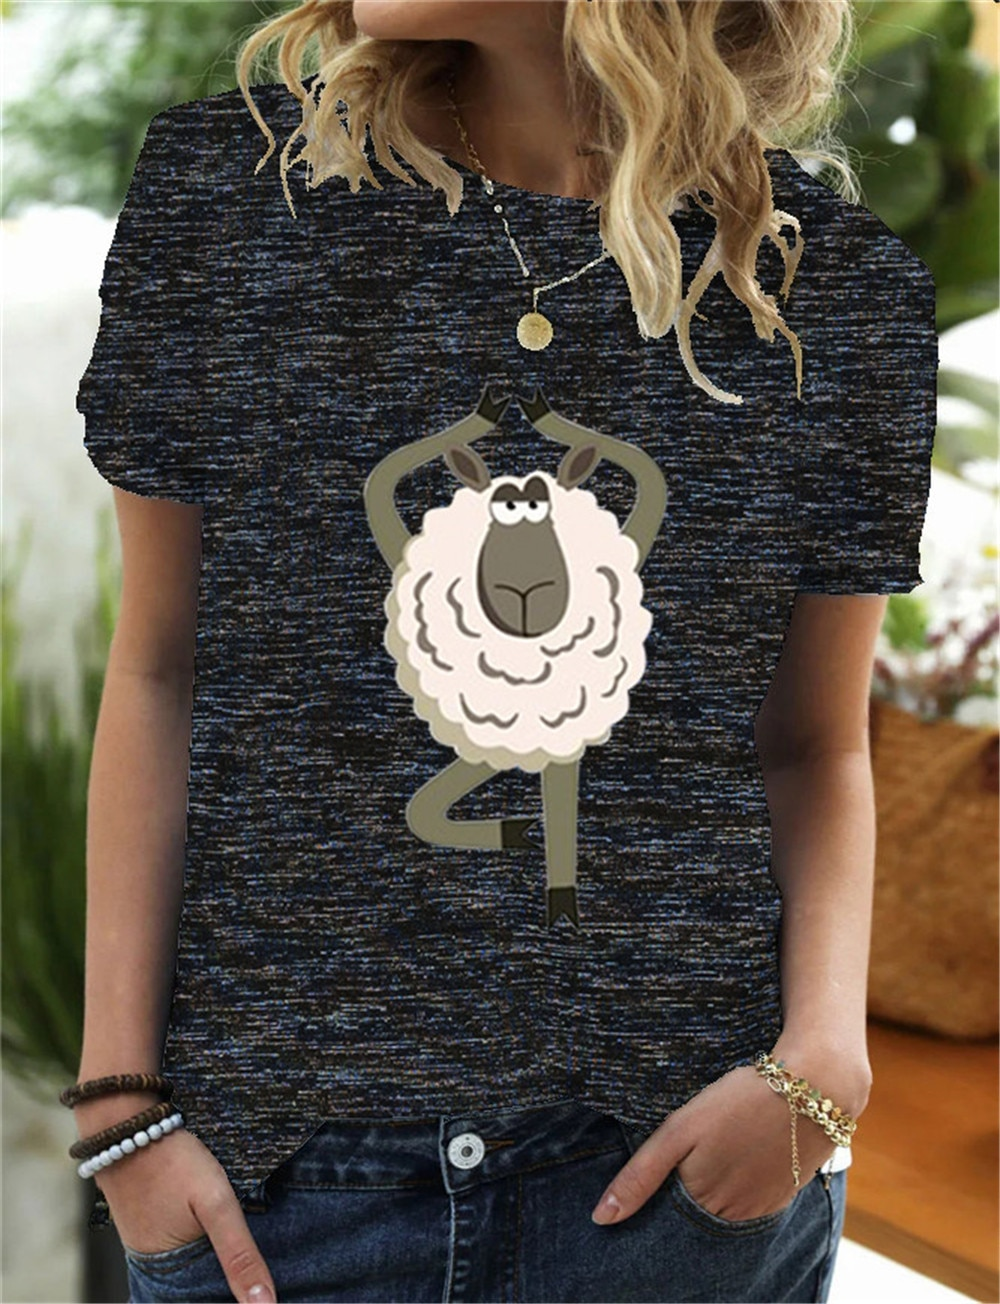 Yoga Sheep Cartoon T-shirt Women Fashion Tshirt Women Cute Printed O-neck Top Tee Shirt Femme Casual